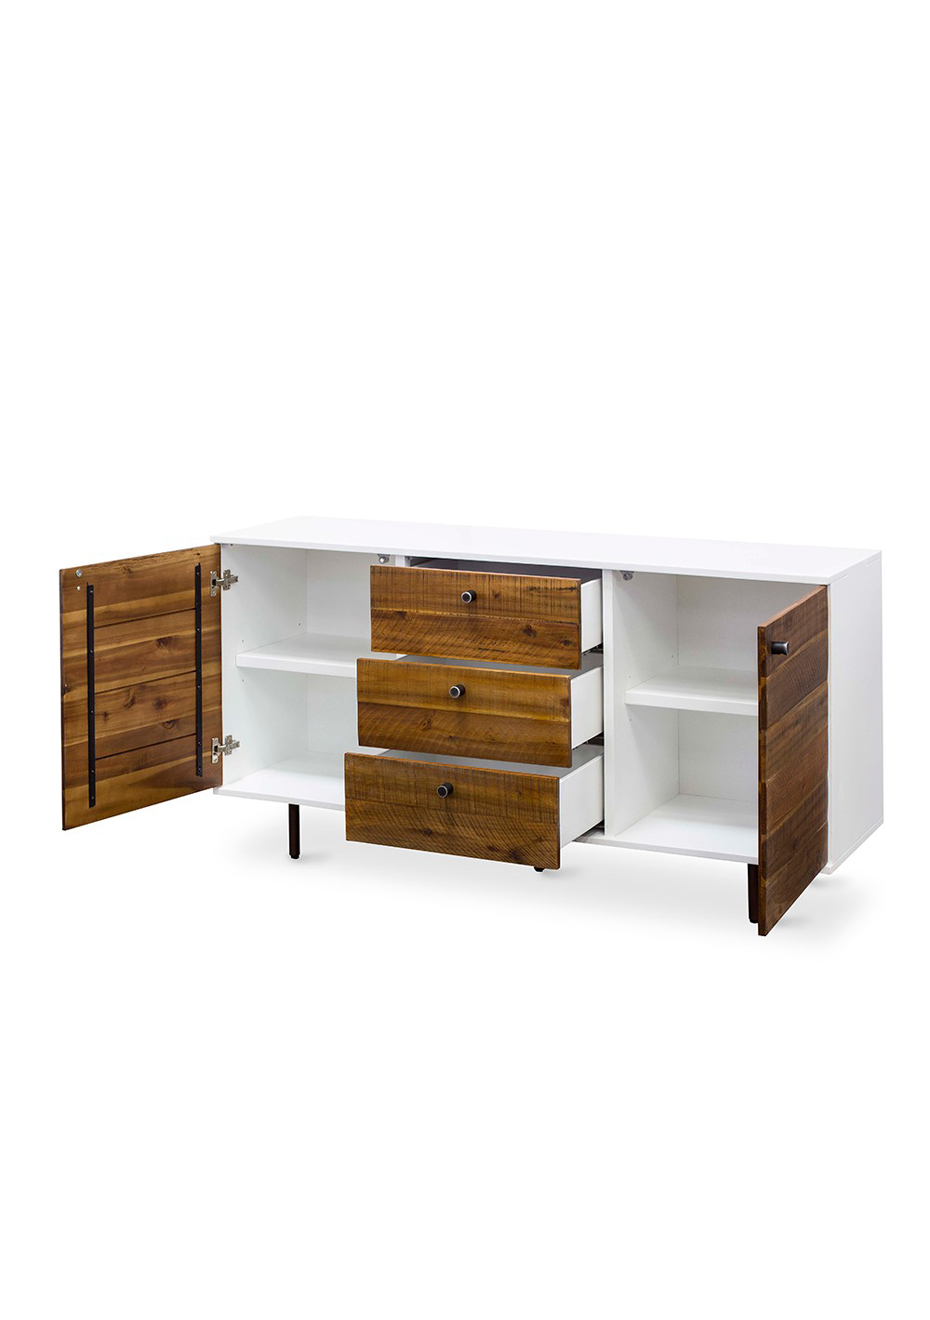 Timber Sideboard Furniture By Design Rustic Madrid Sideboard Rustic